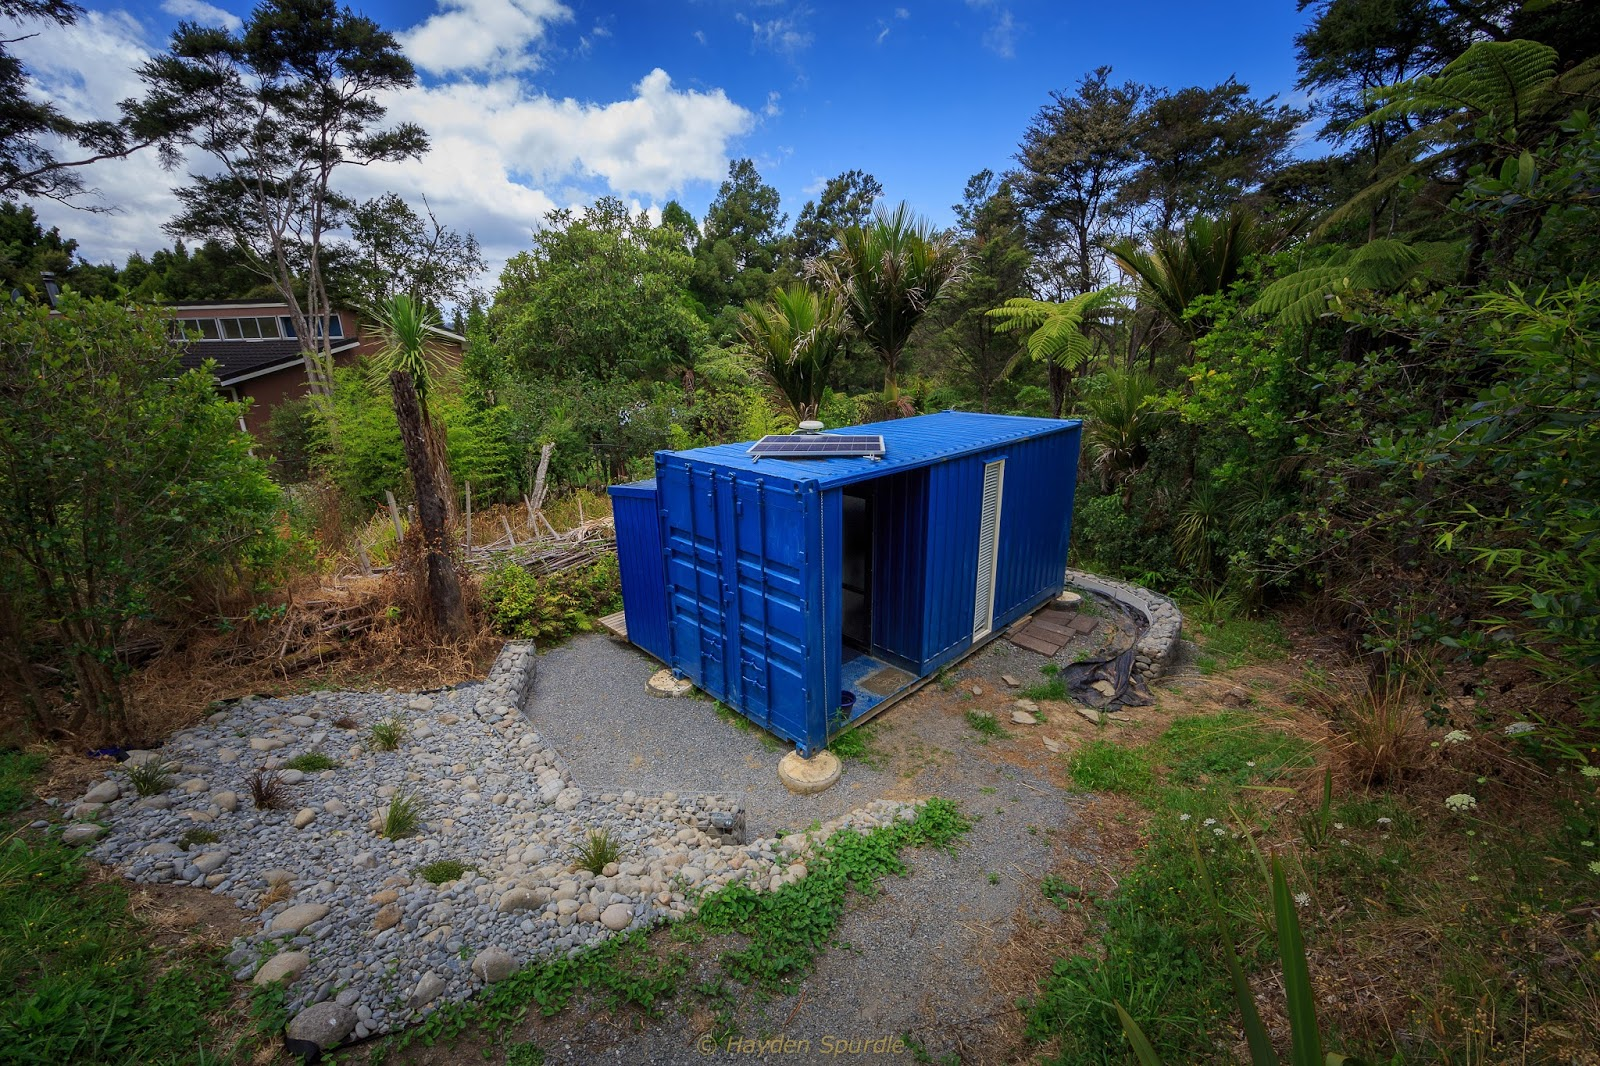 D With A Desire To Create Affordable Sustainable Quality Homes Led Me Take The Giant Leap Of Faith Start Iq Container Ltd In 2017